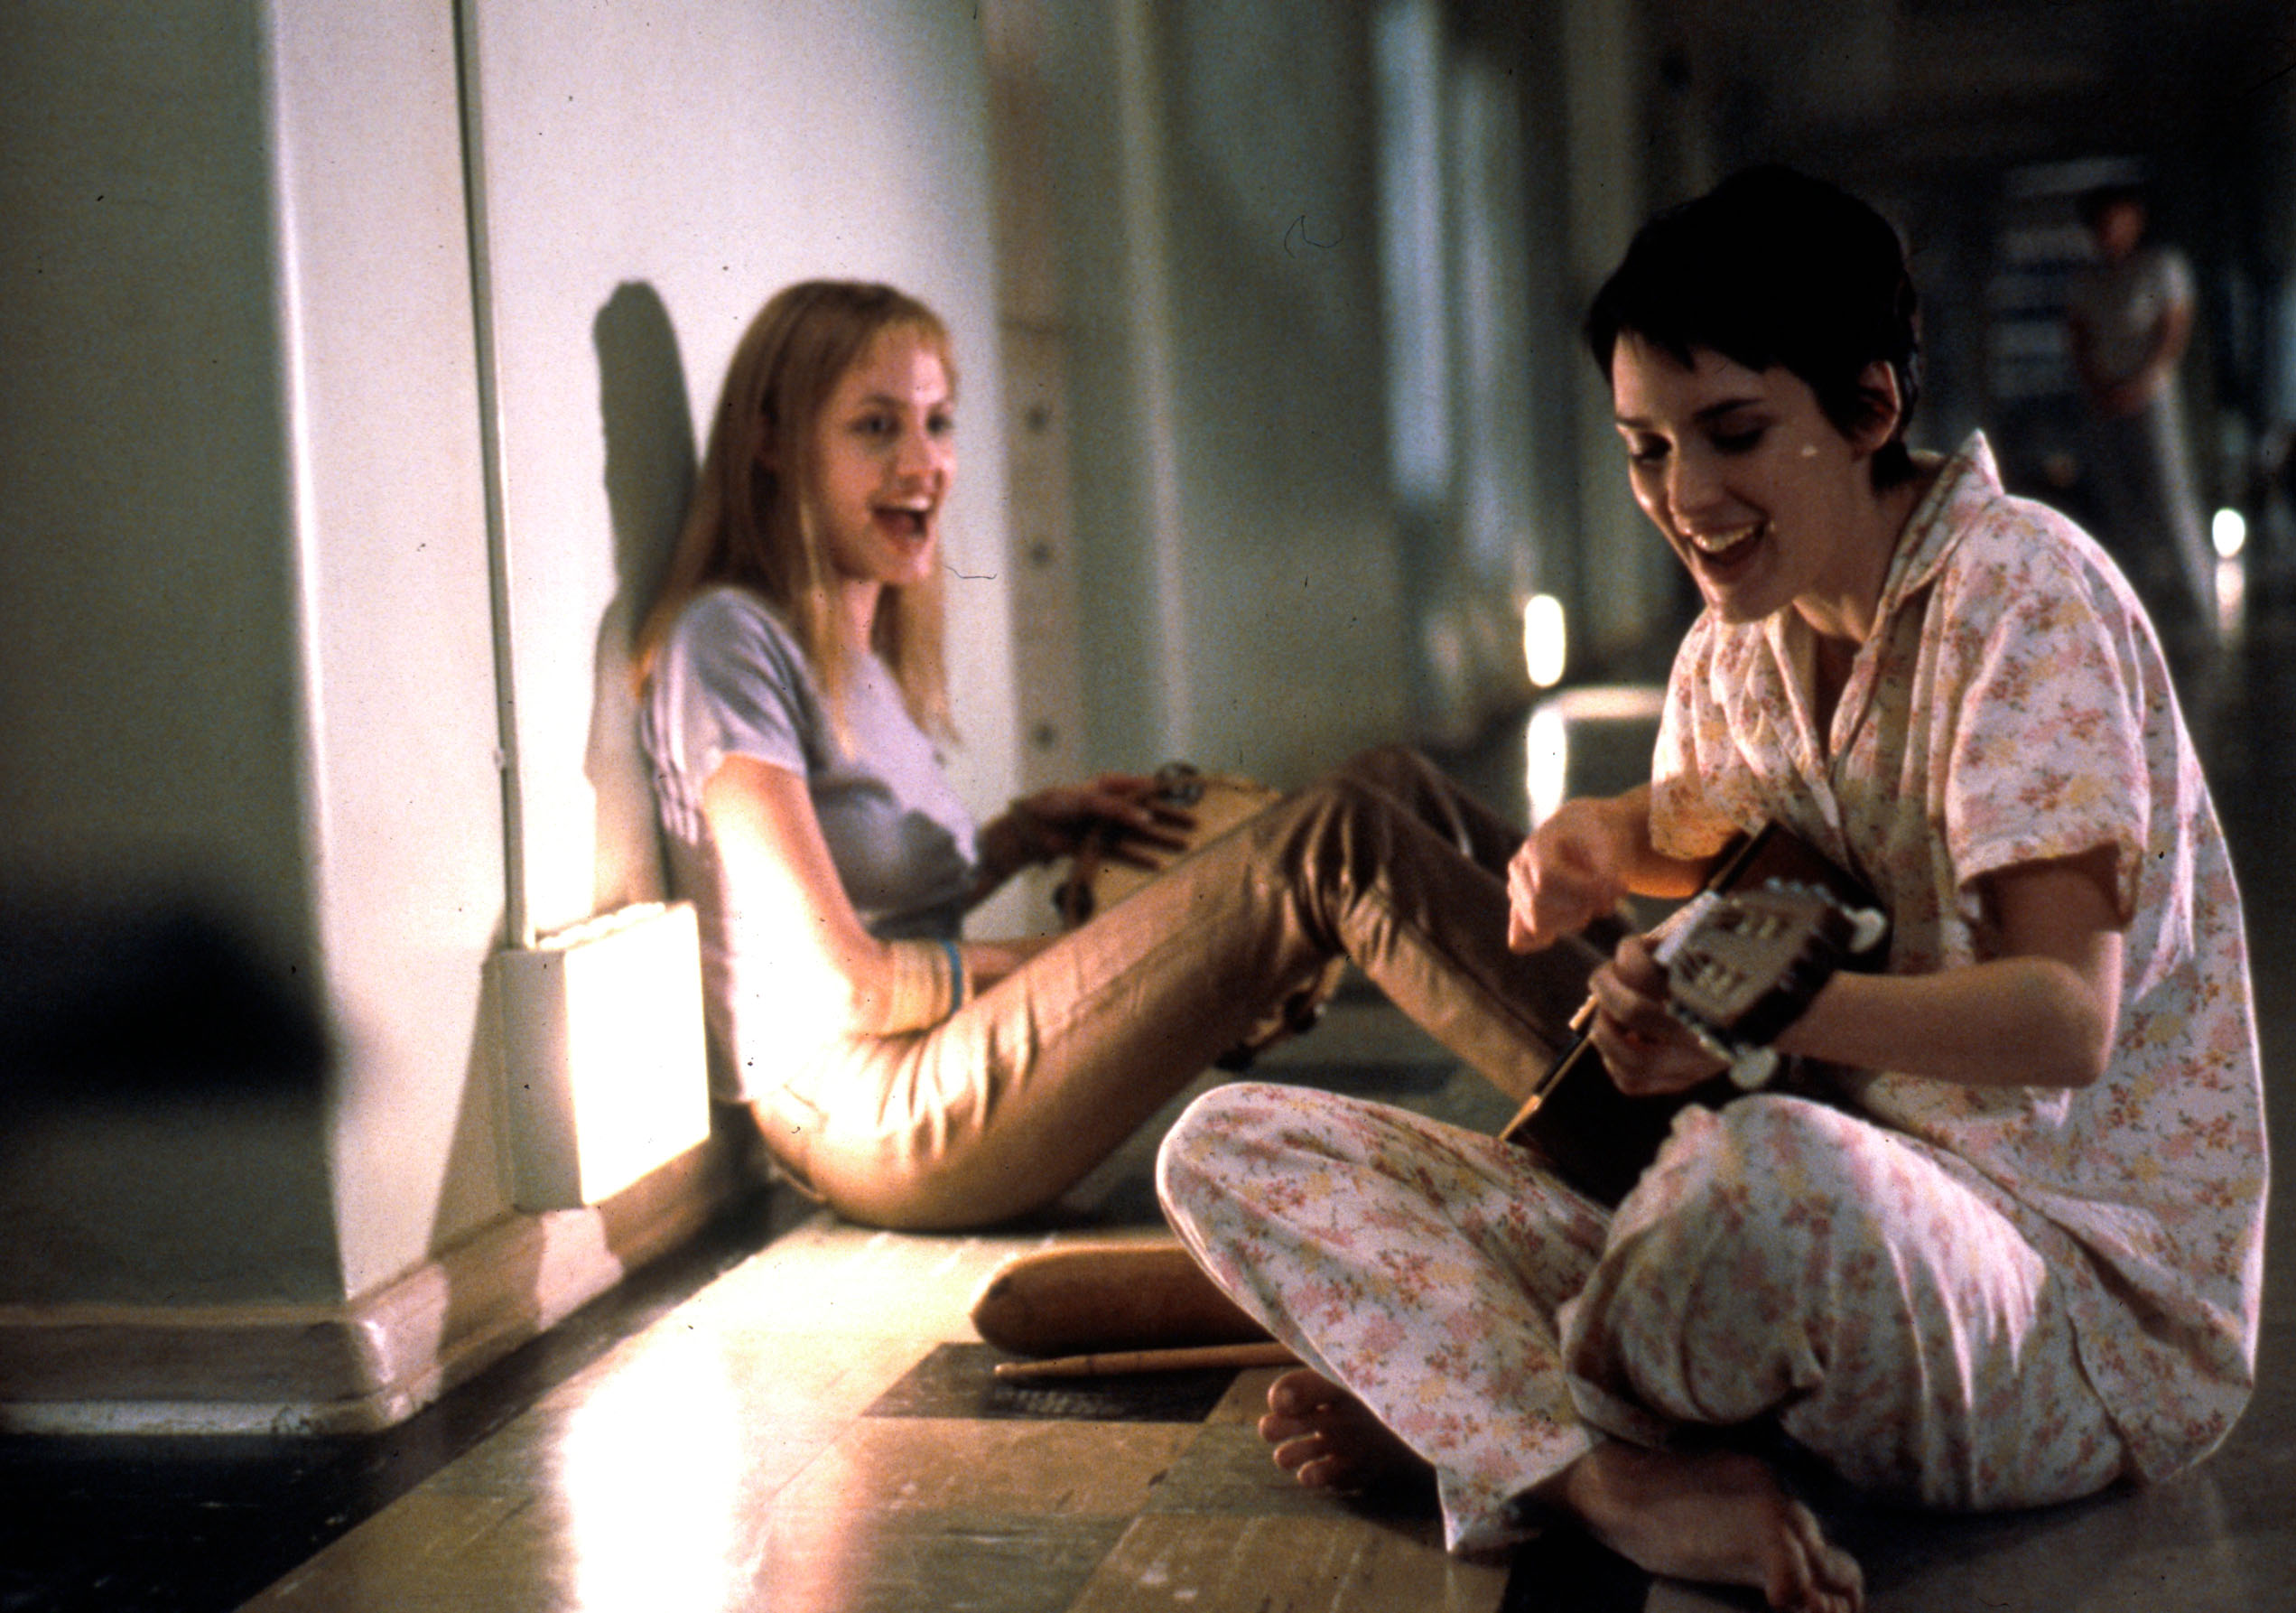 Apr 20, 2000; Hollywood, California, USA; After friend and fellow patient Polly lands herself in solitary, ANGELINA JOLIE (left as Lisa) and WINONA RYDER as Susanna Serenade her in 'Girl Interrupted'. Mandatory Credit: Photo by Suzanne Tenner/Columbia TriStar/ZUMA Press. (©) Copyright 2000 by Courtesy of Columbia TriStar, HANDOUT